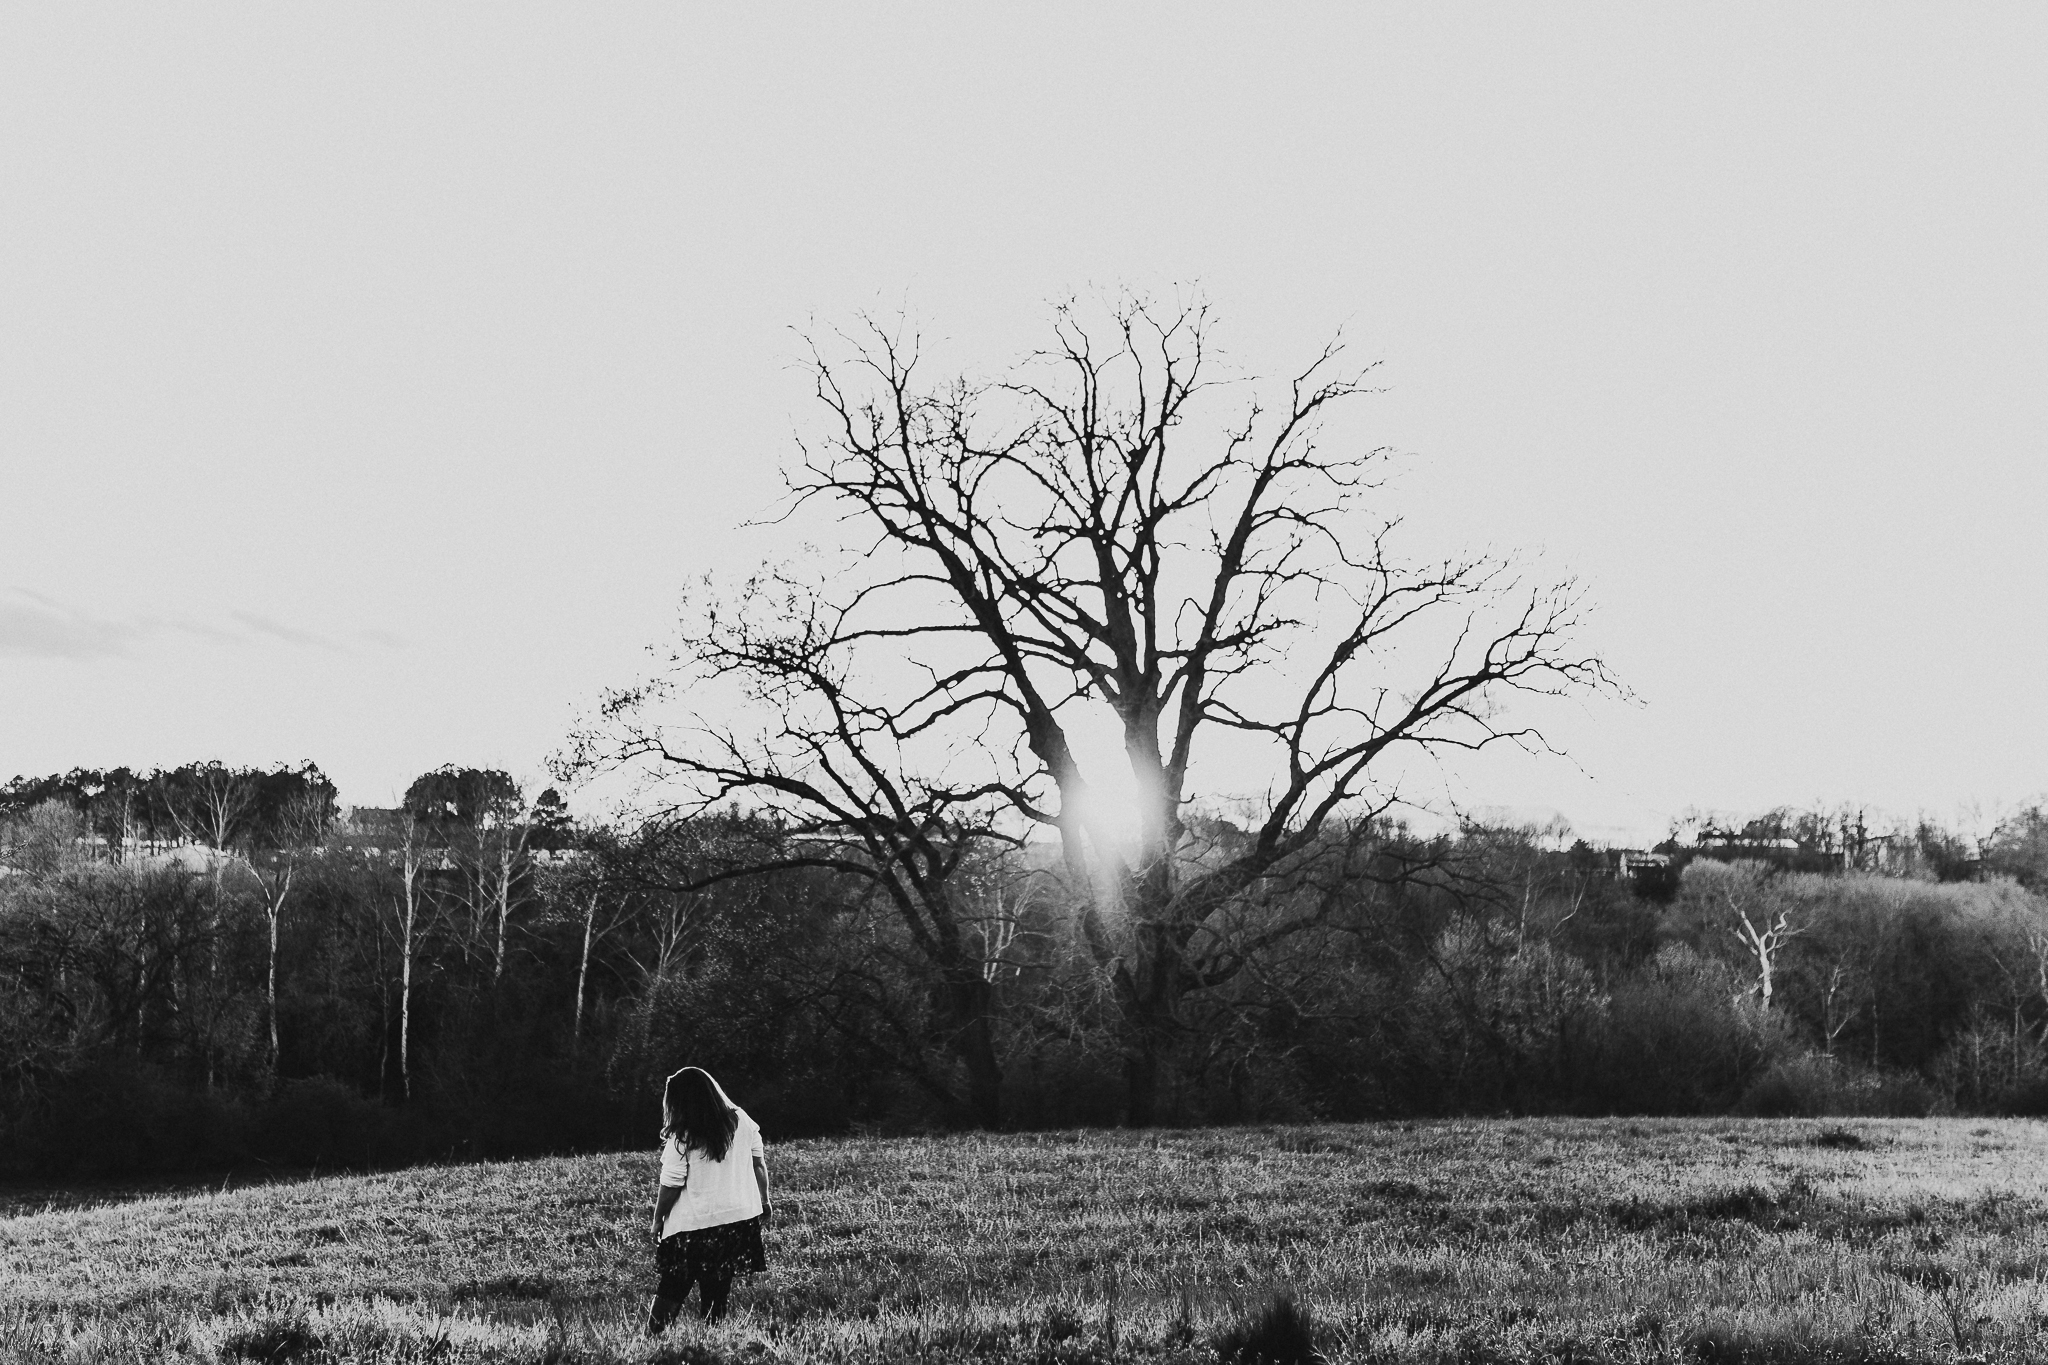 Image captured by Jenna Moon and edited by me!